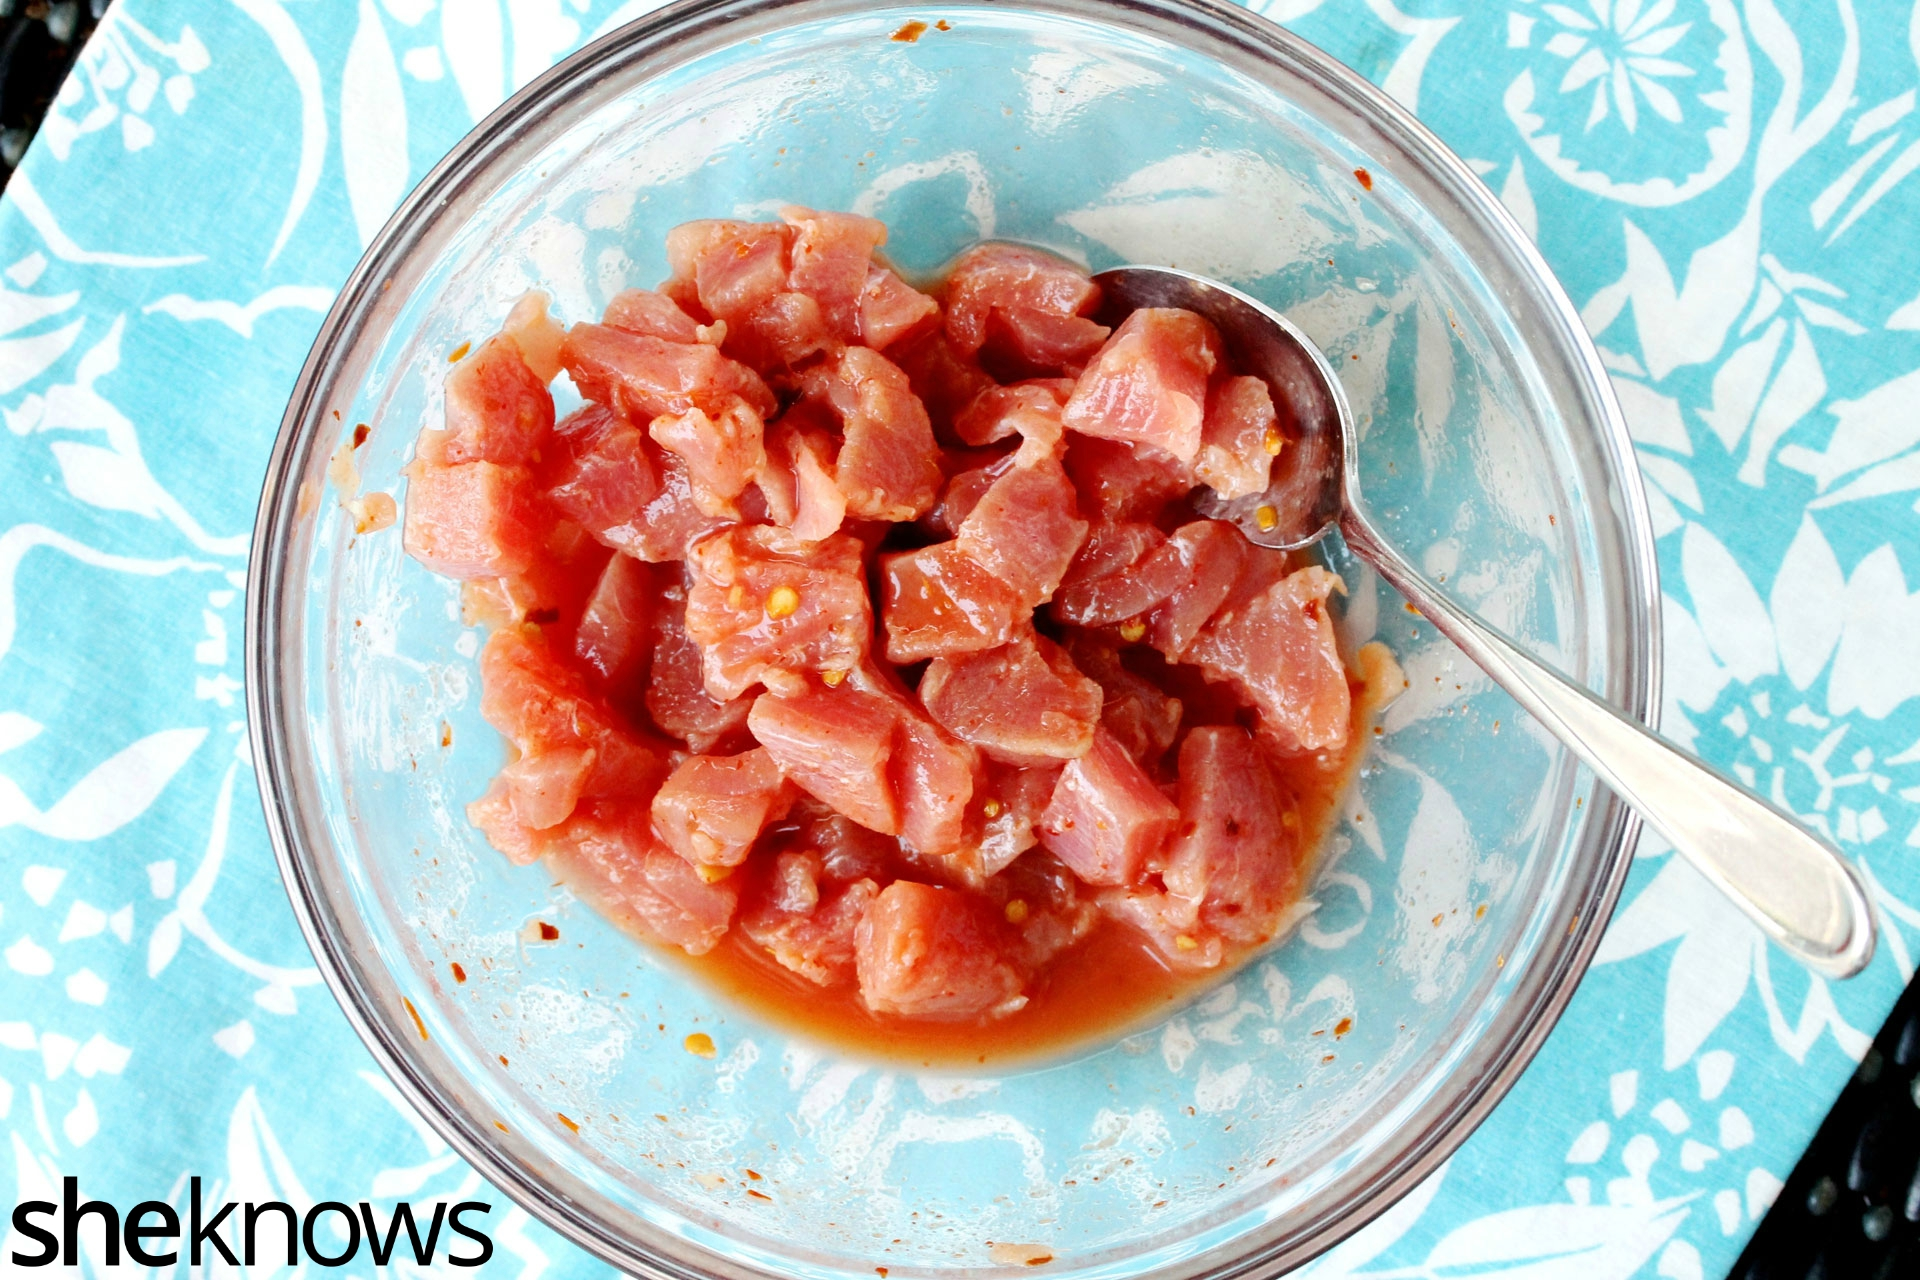 spicy-tuna-in-bowl